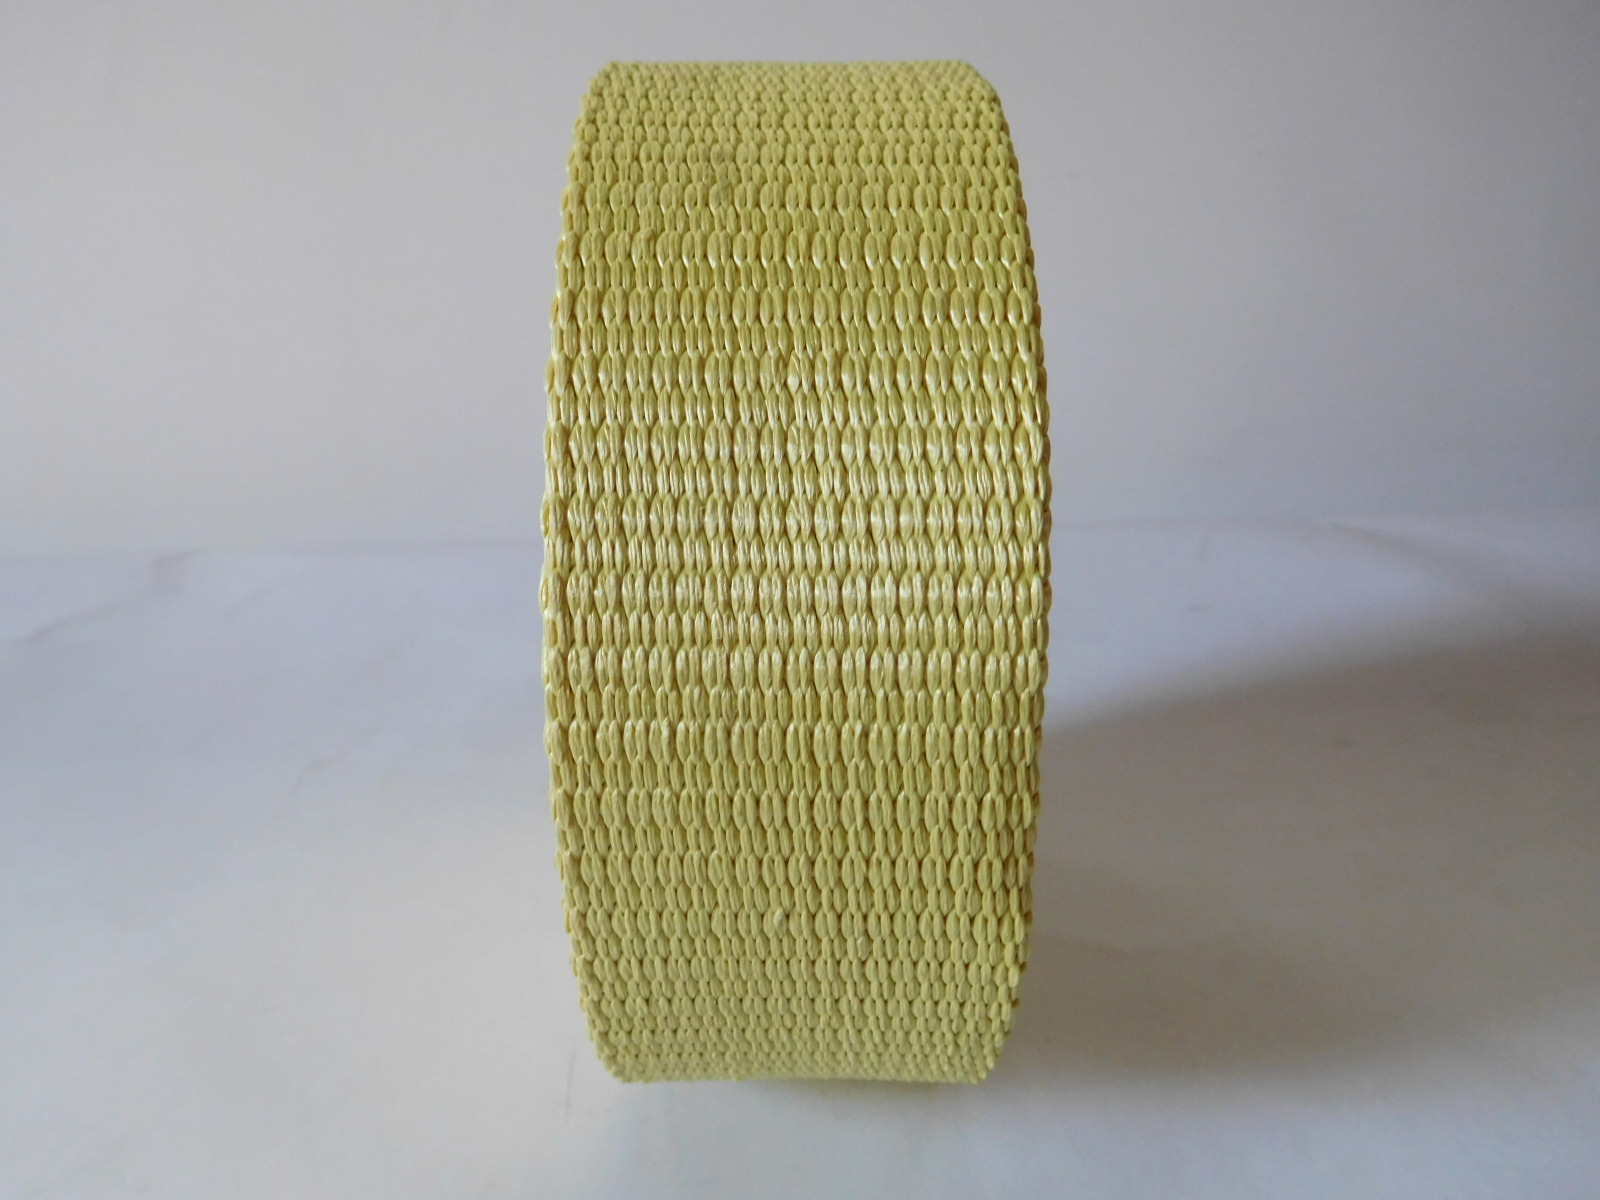 50mm High strong pulling force aramid fiber webbing for shipbuilding industry